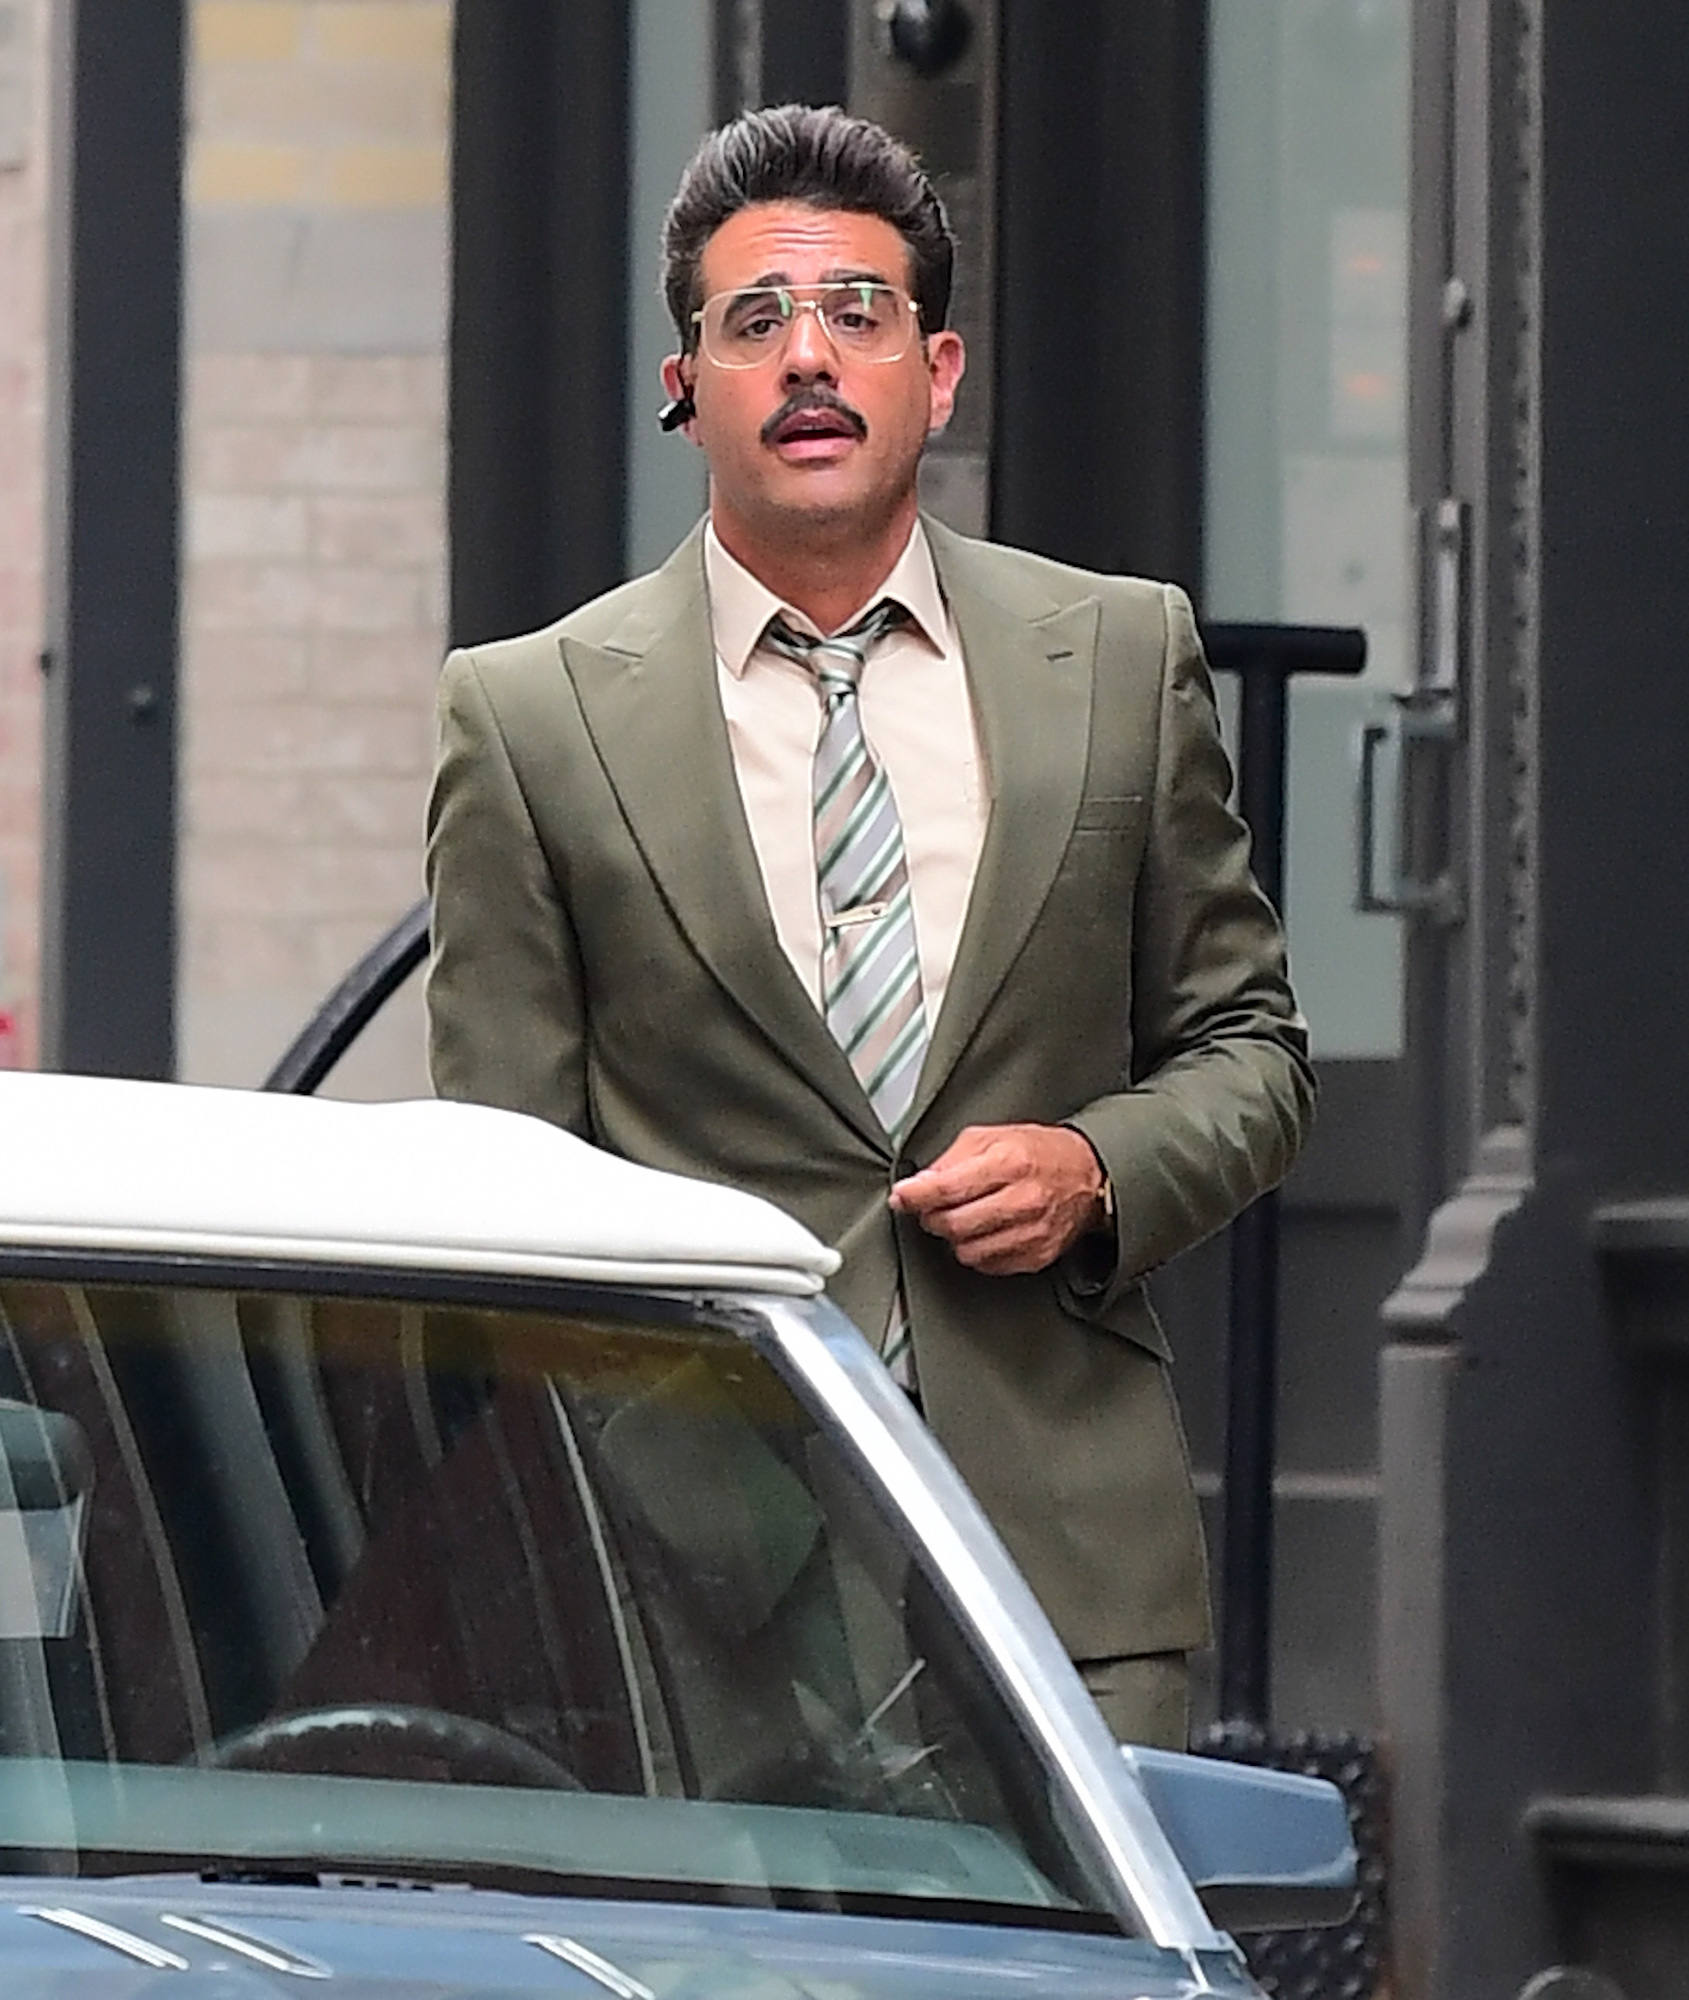 """Bobby Canavale Gets into Character as he Films """"Mr. Robot"""" in NYC"""